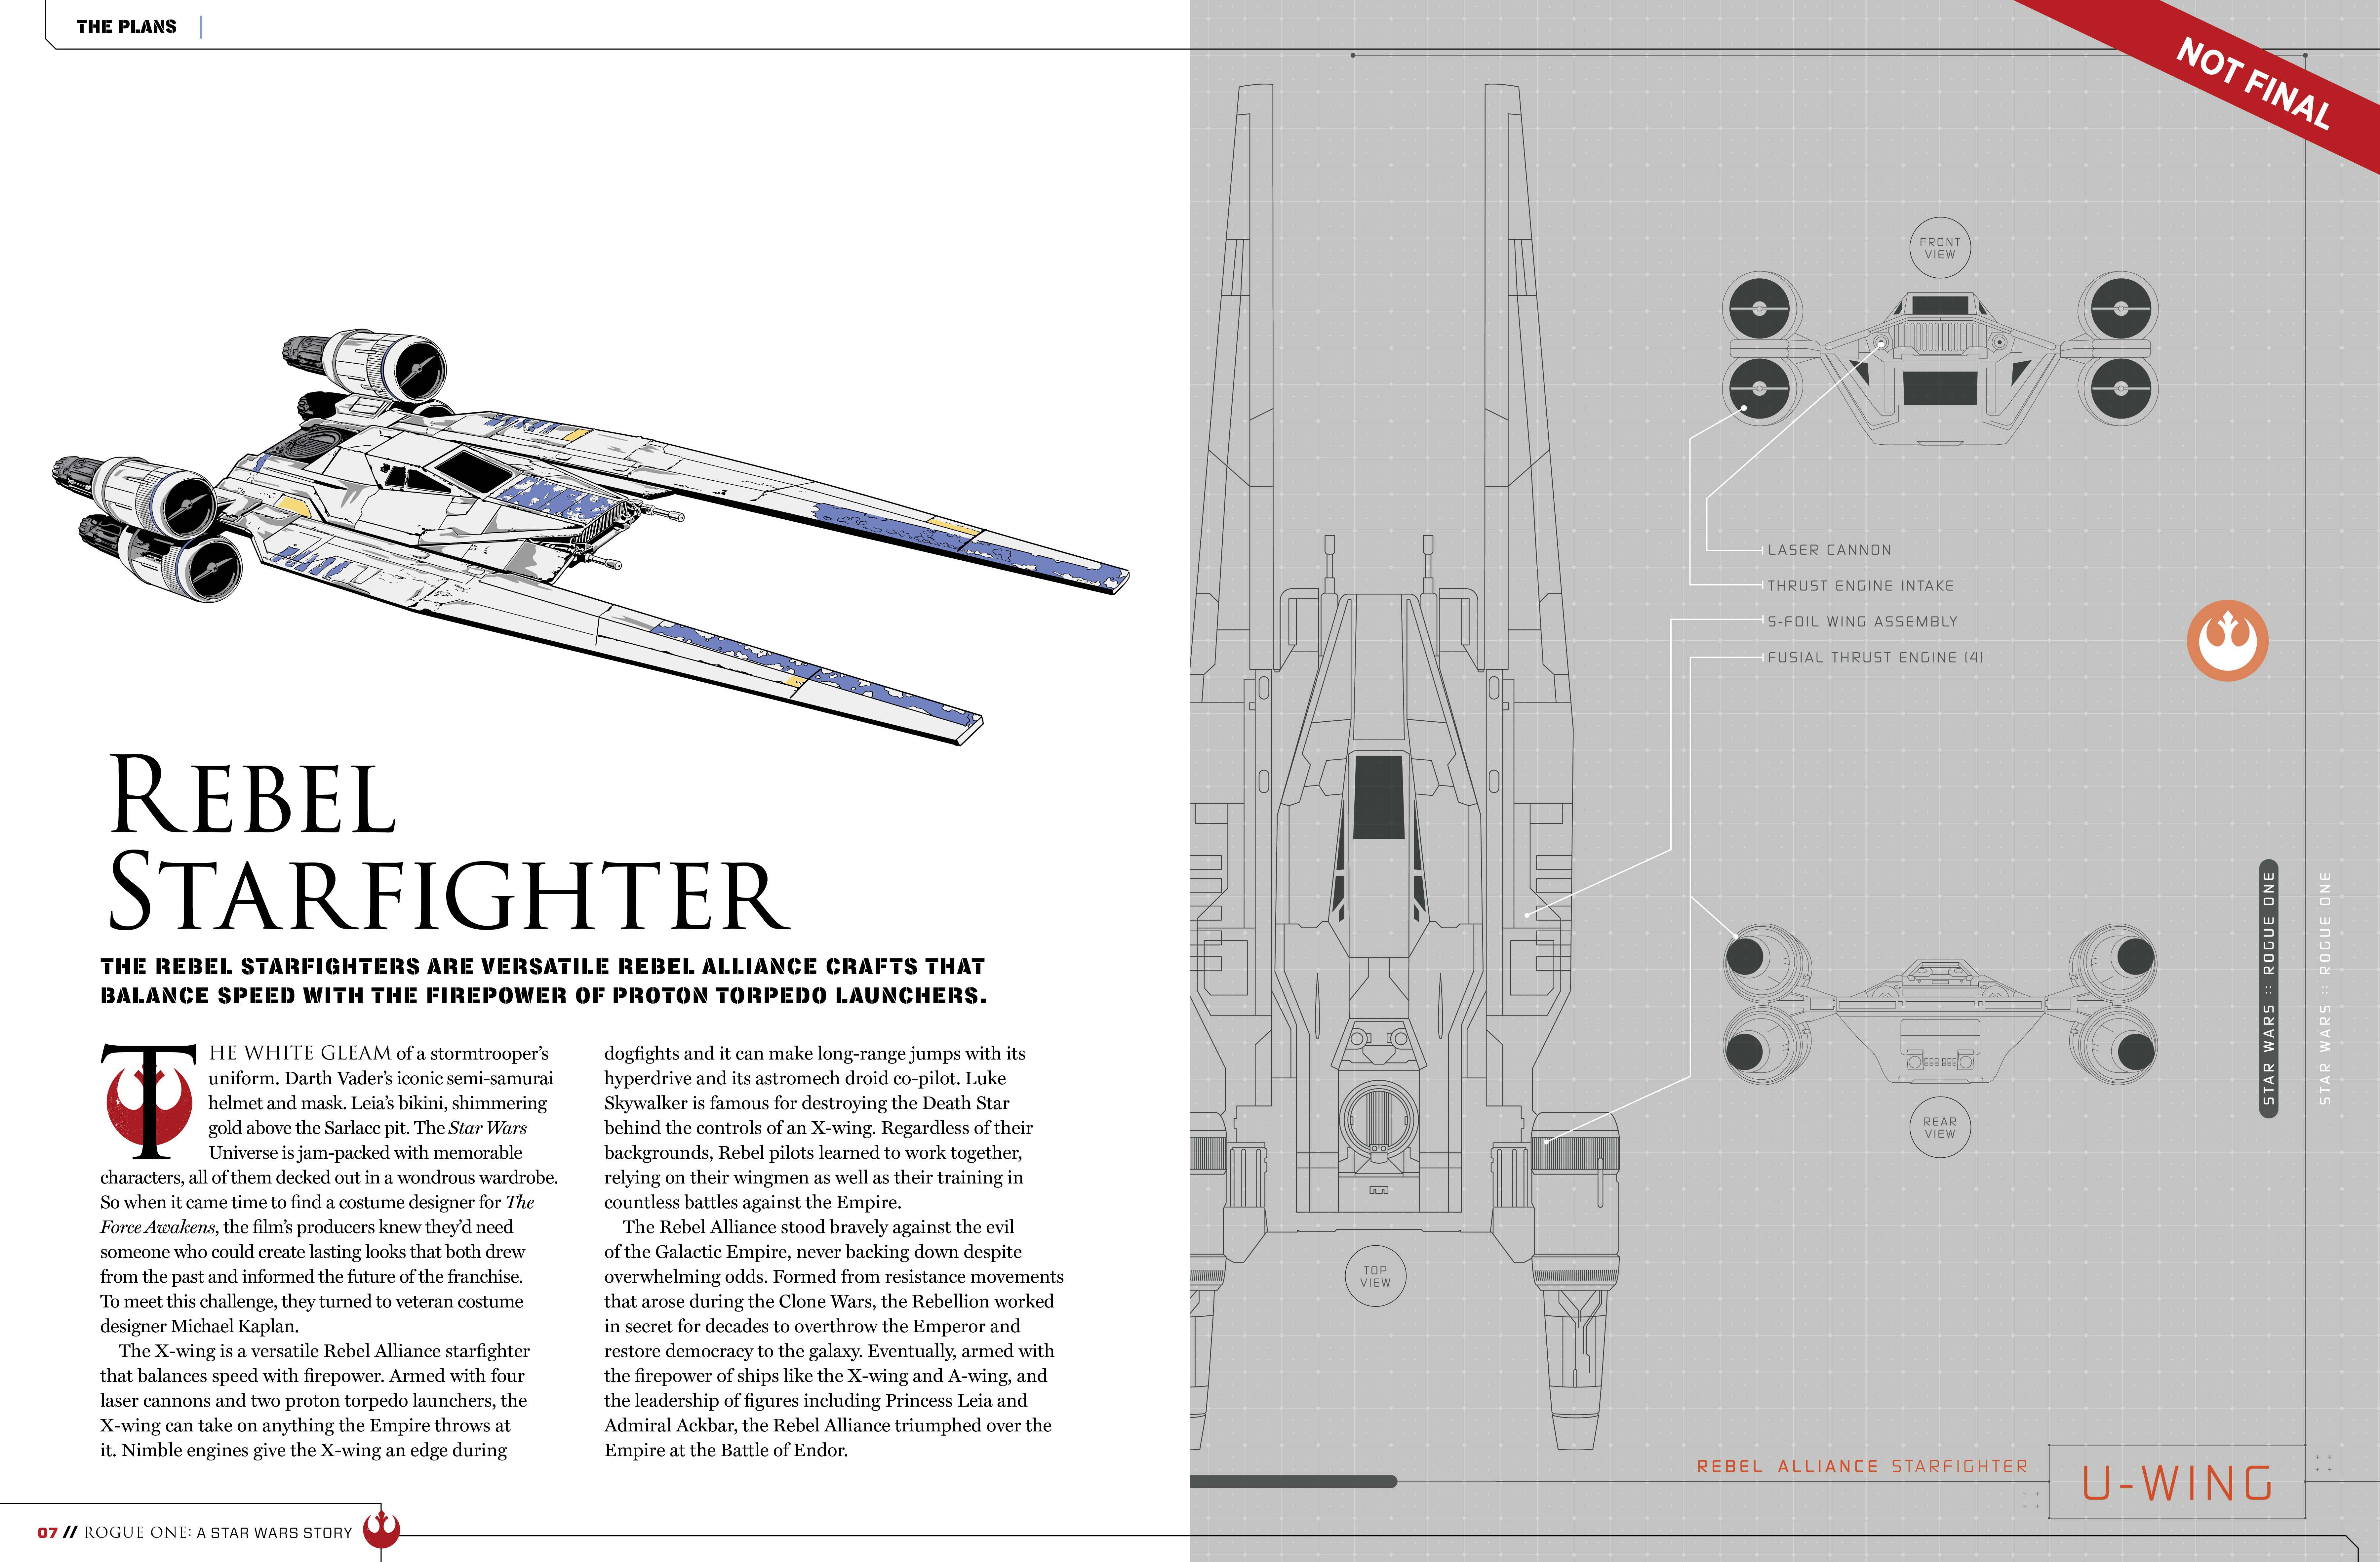 Rogue One ysis: The U-Wing is NOT a Starfighter ...